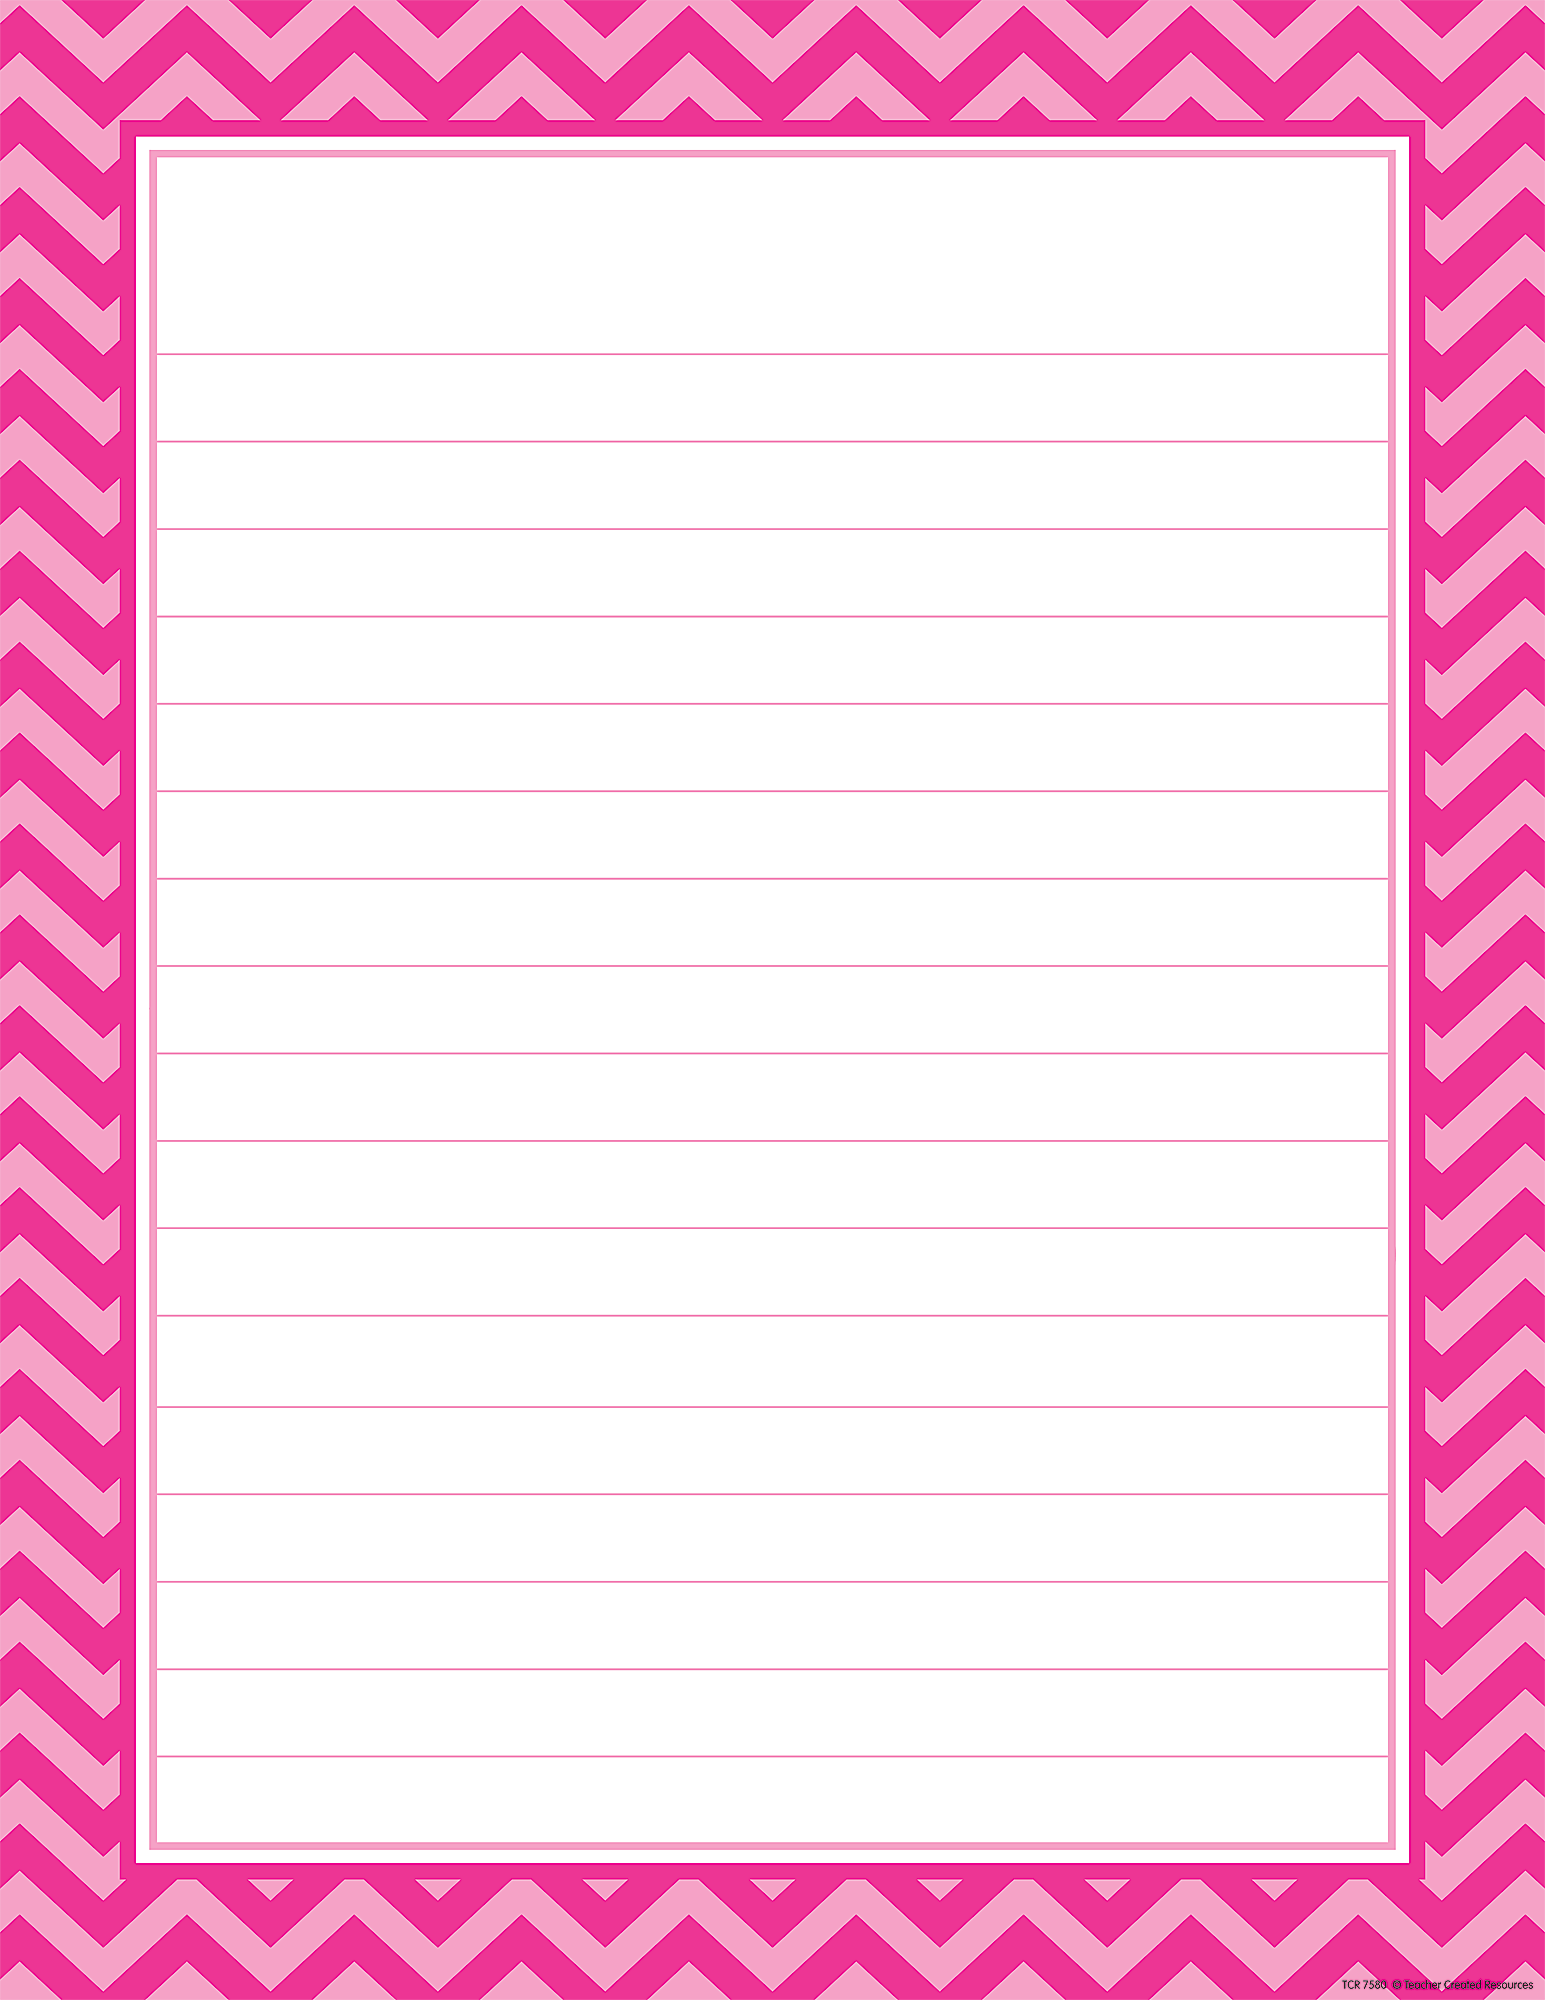 Hot Pink Chevron Lined Chart TCR7580 Teacher Created Resources